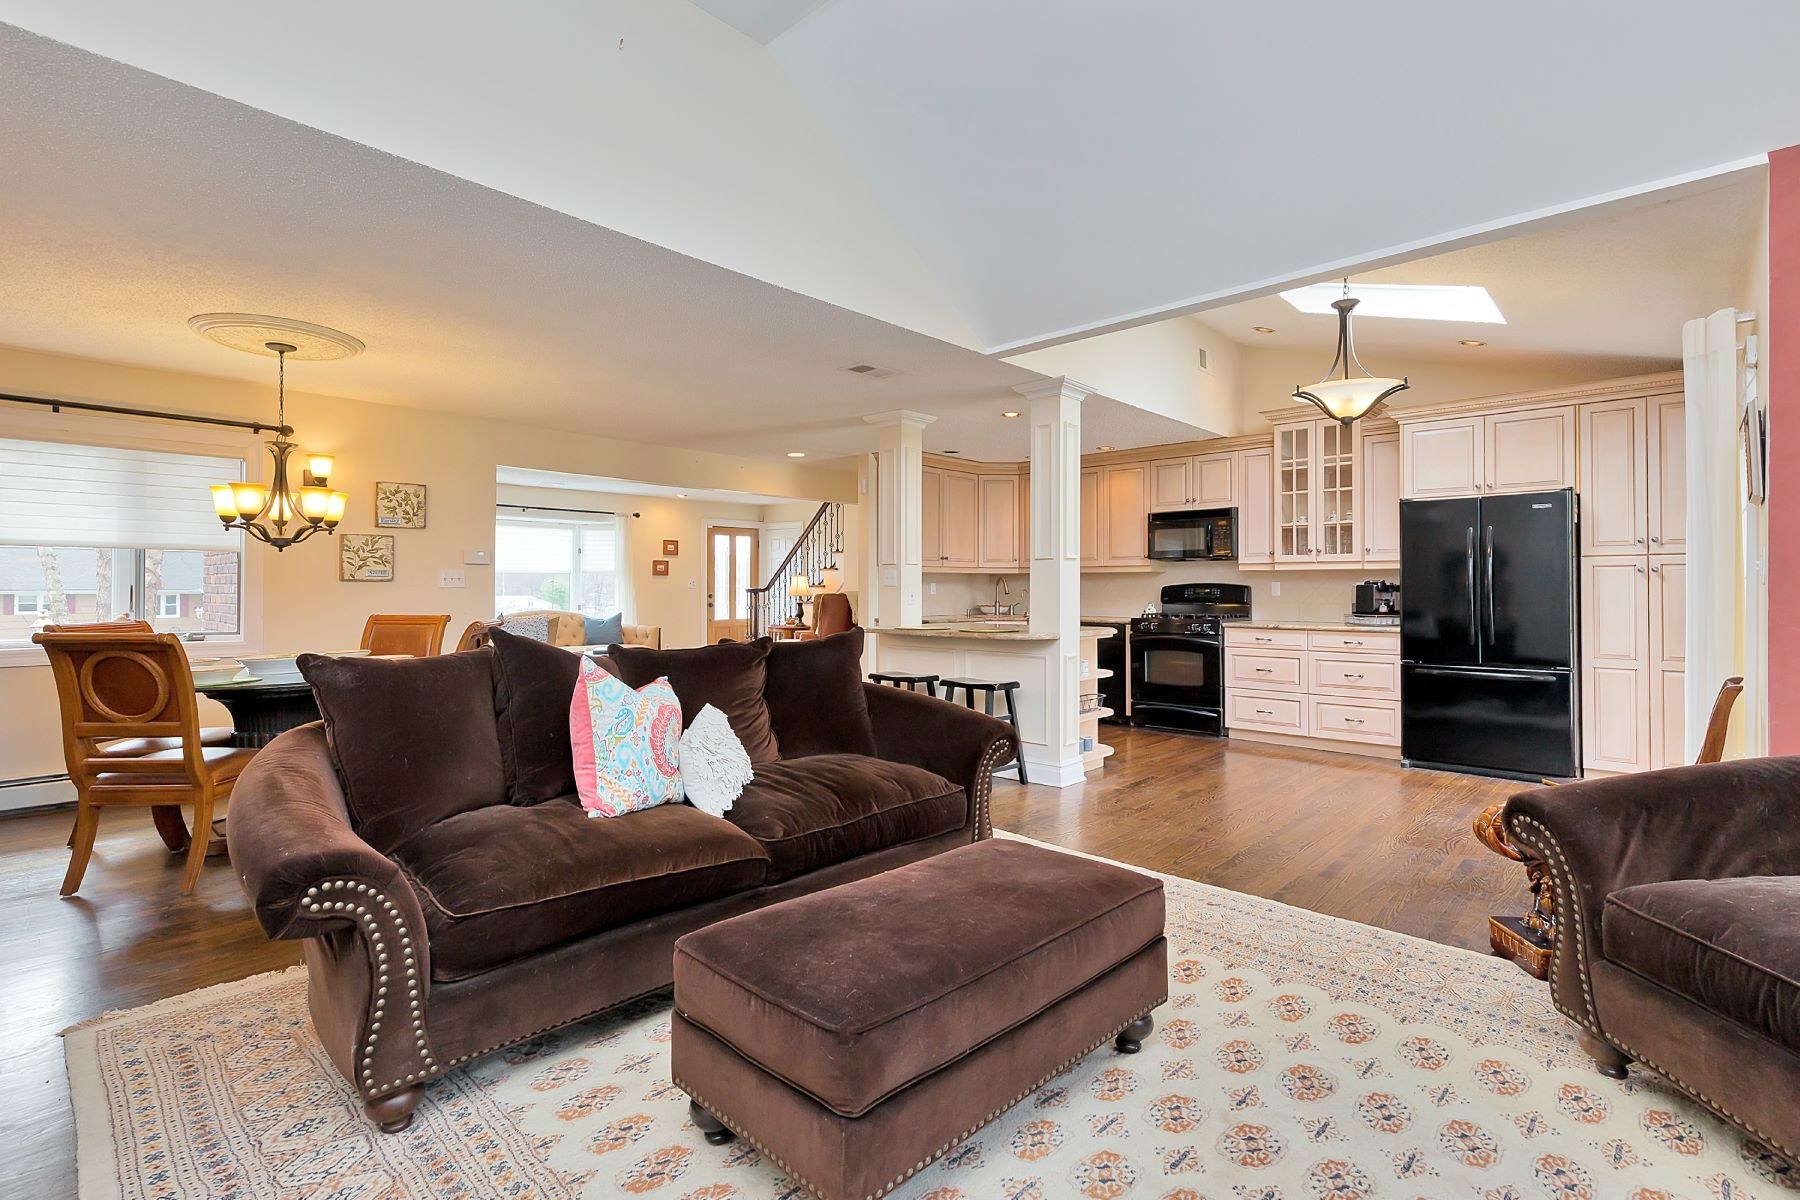 Single Family Home for Sale at Gracious Living 46 Mildred Terrace Clark, New Jersey 07066 United States